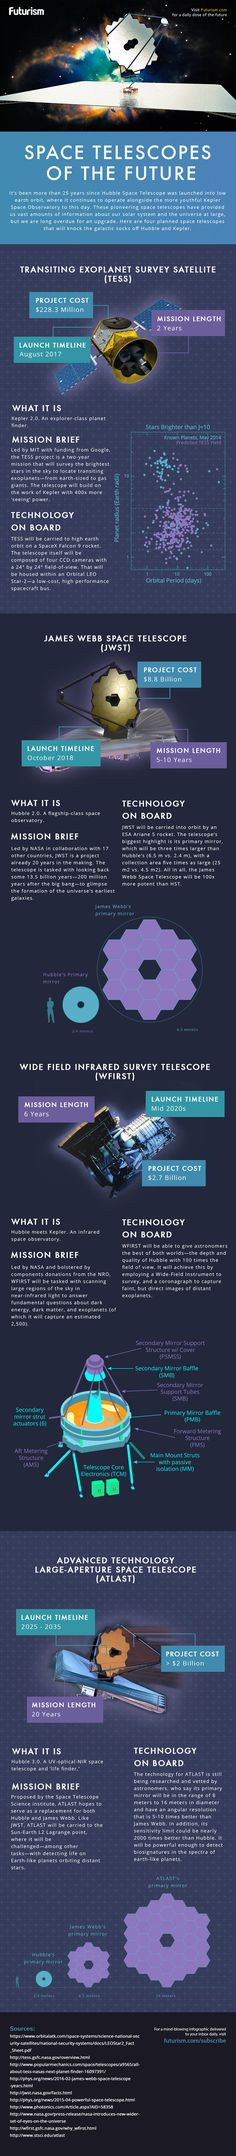 The Space Telescopes of Tomorrow [Infographic]